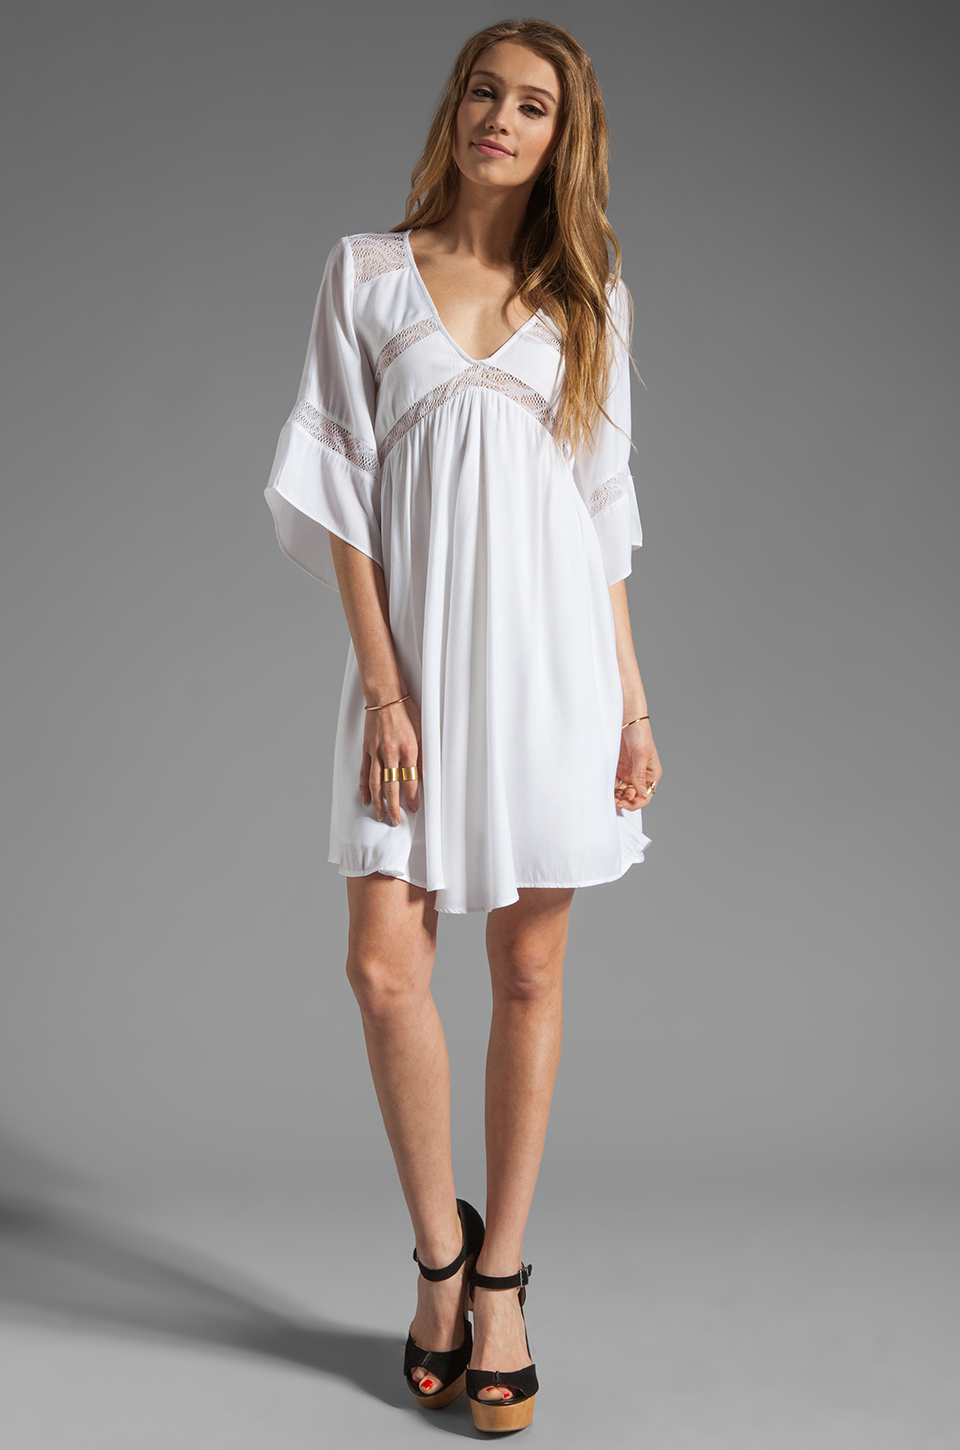 Ladakh Rain Dancer Dress in Ivory